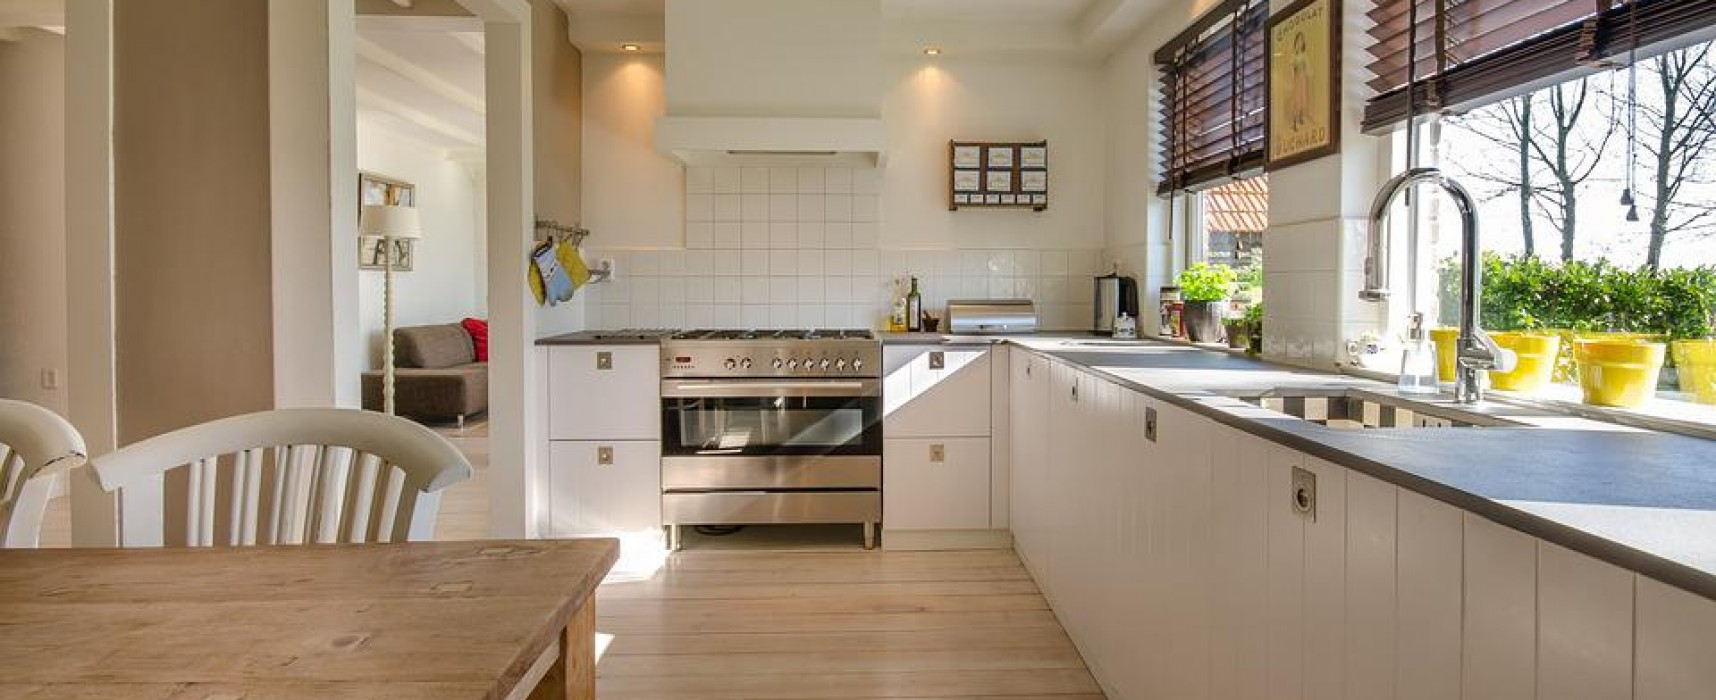 4 Things to Consider When Designing Your Ideal Kitchen